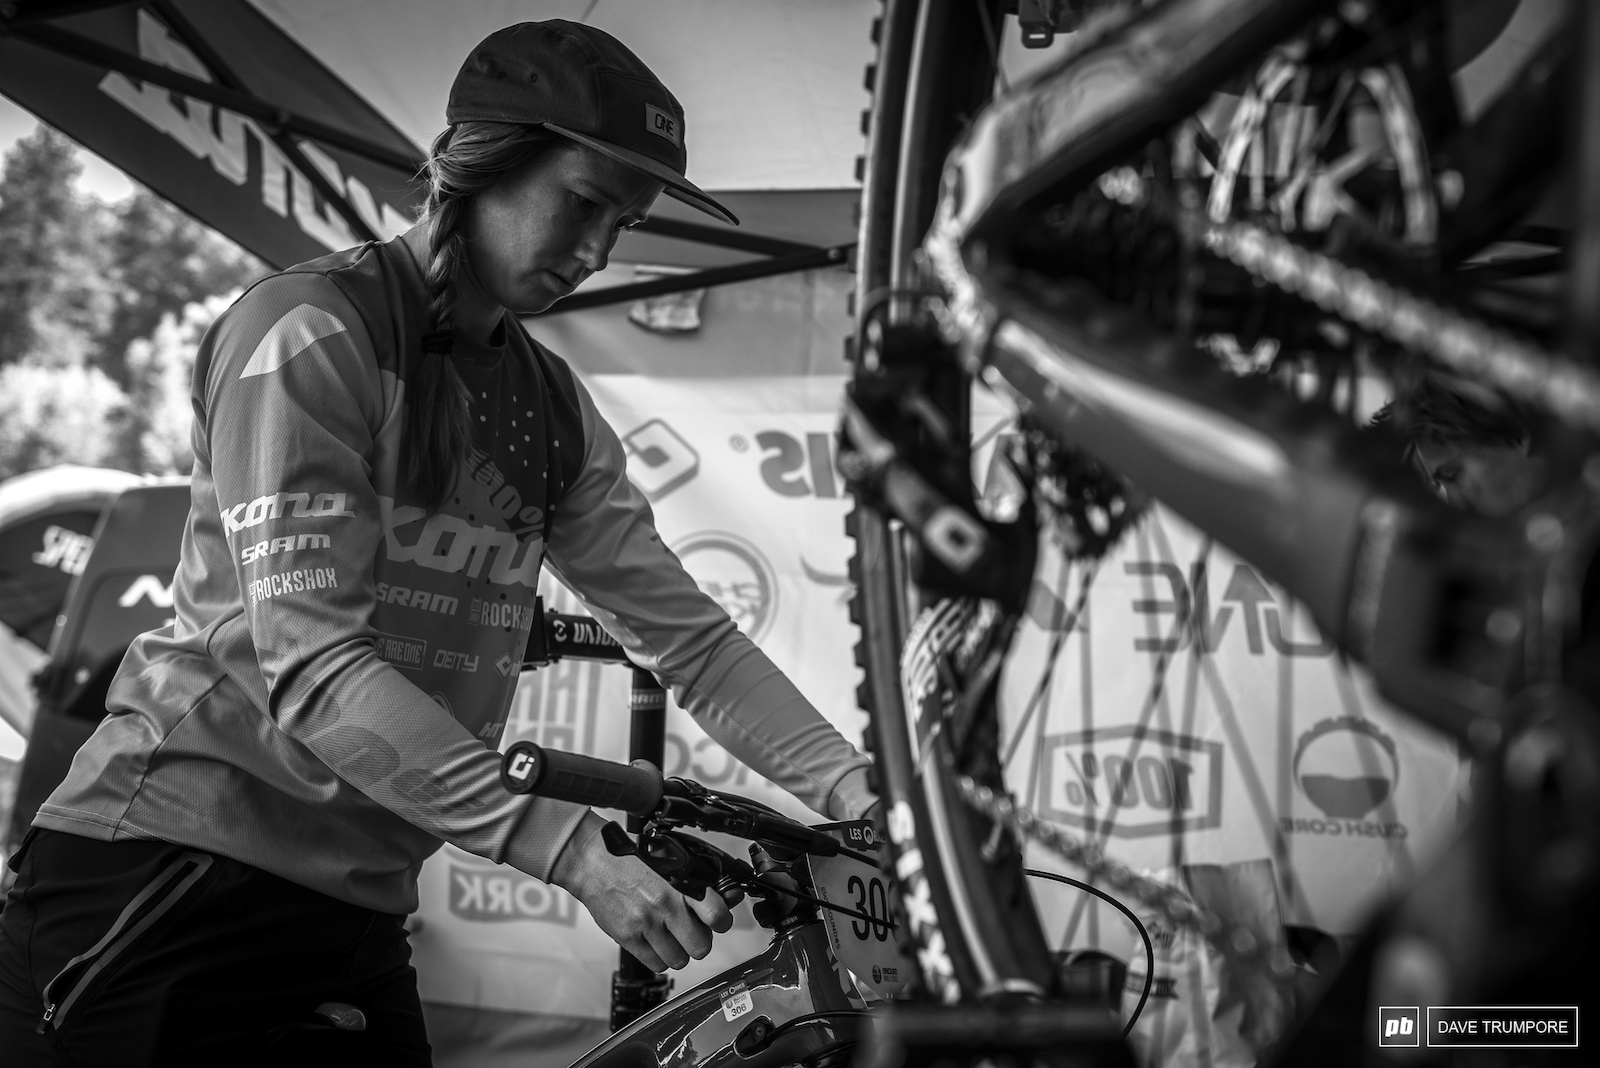 Miranda Miller putting the final touches in her race bike